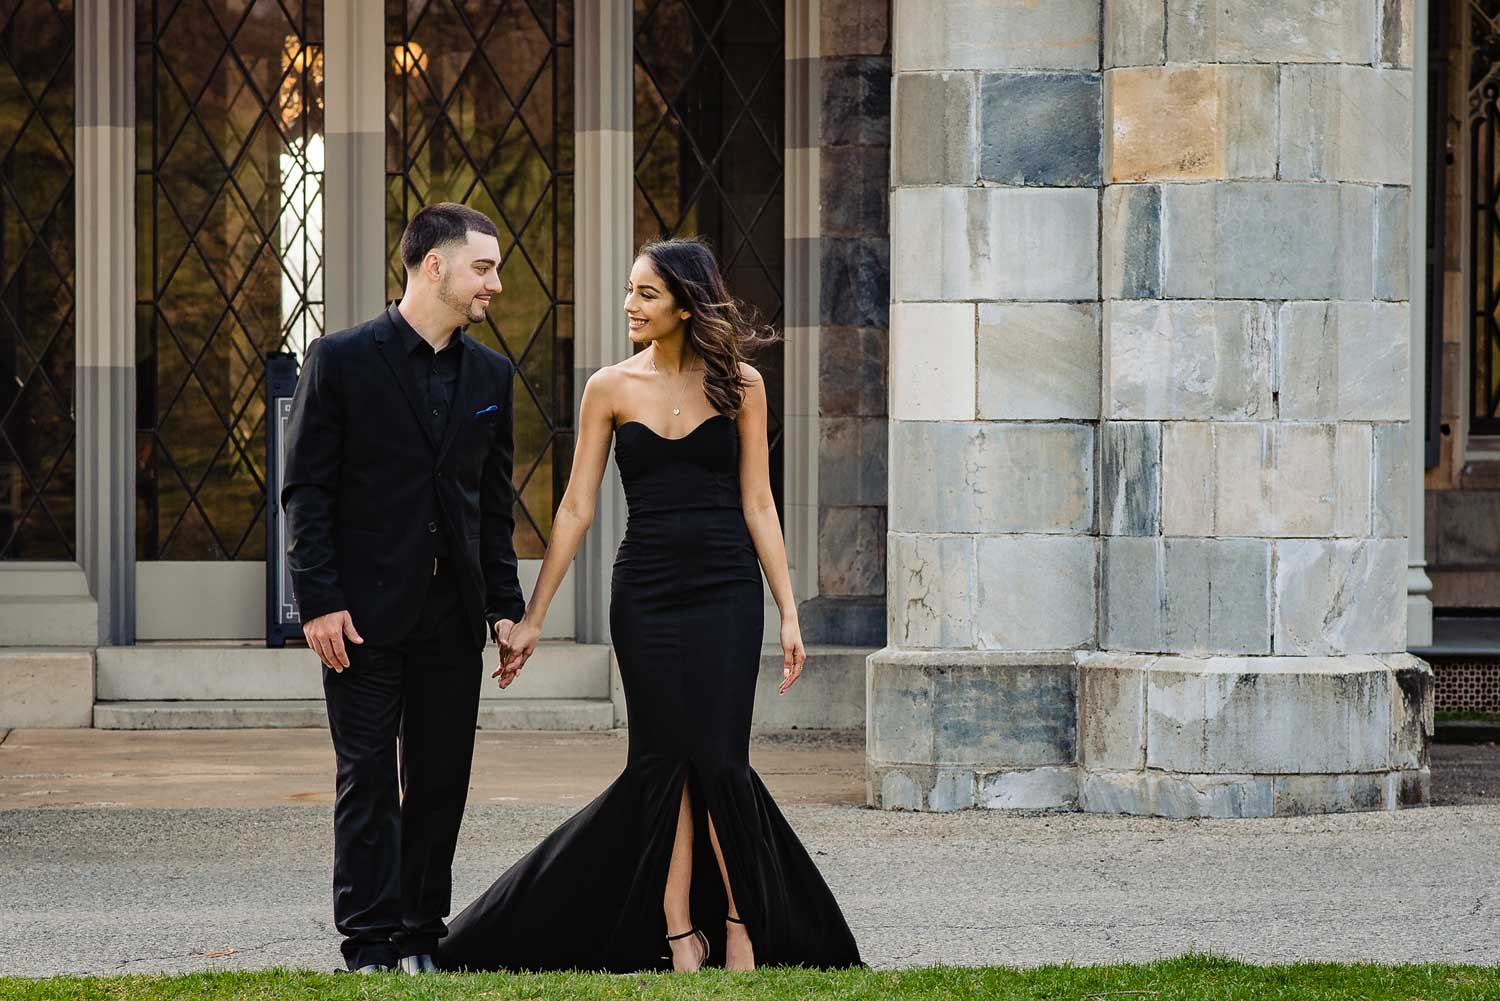 New York engagement photo shoot at lyndhurst mansion engagement photos bride in black gown